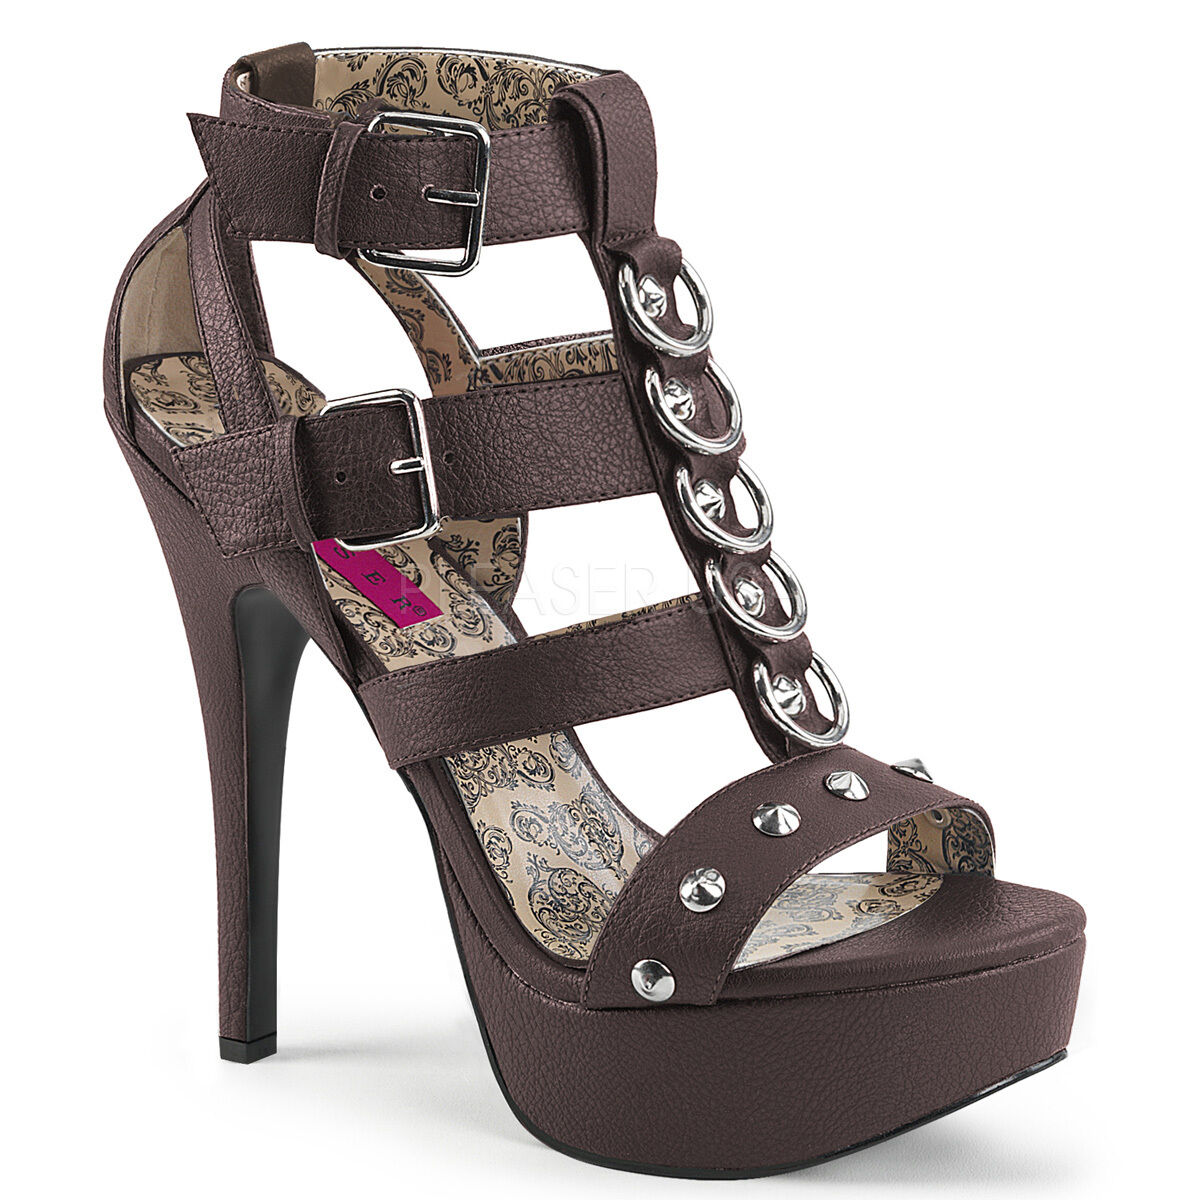 TEEZE-42W WIDE ACCENT WIDTH  T-STRAP STUDDED/RINGS ACCENT WIDE DANCE PLATFORM SANDAL (11-16) 0e1677